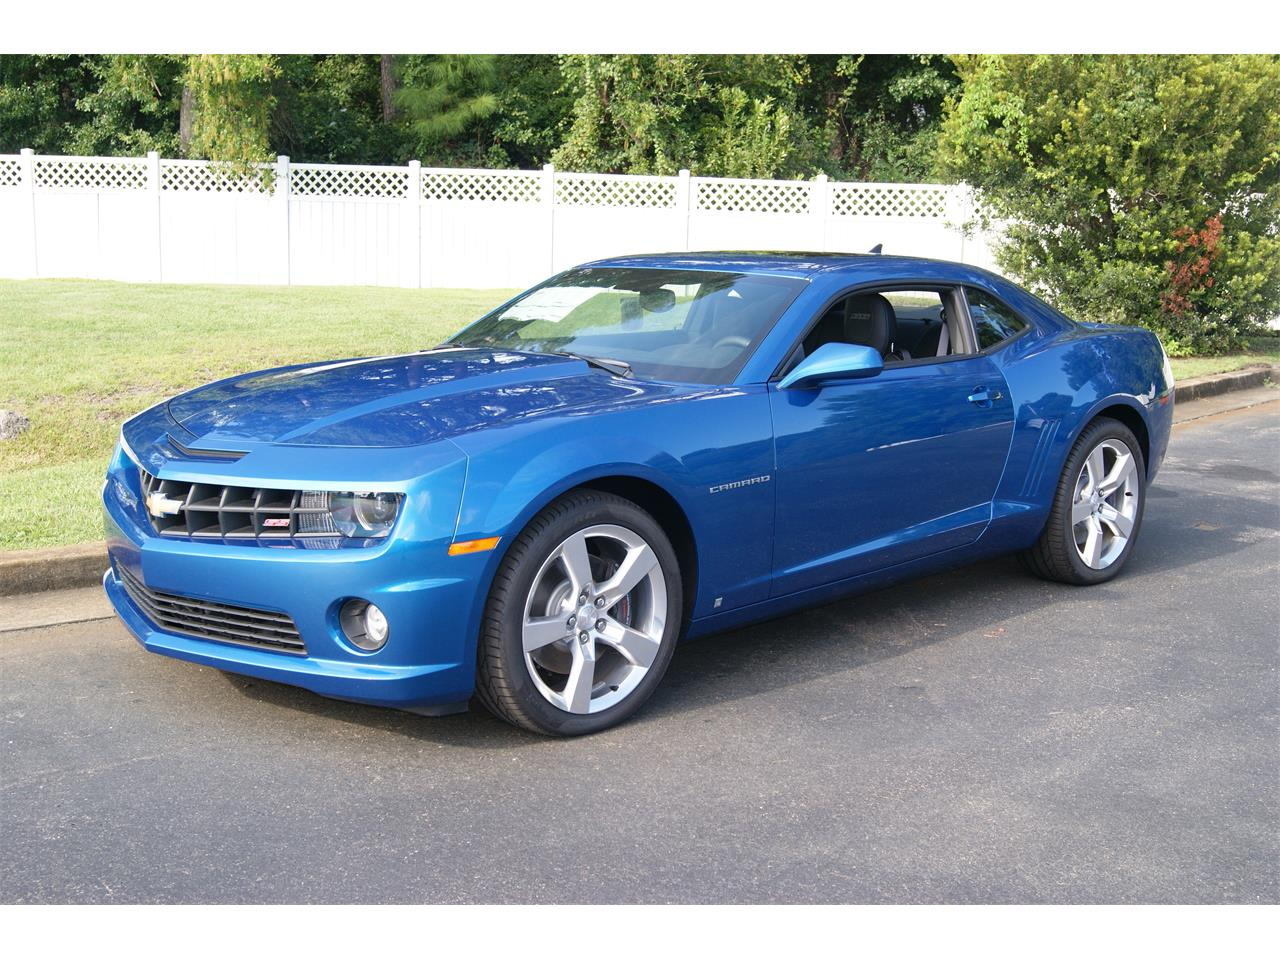 Large Picture of '10 Camaro Offered by a Private Seller - Q77R